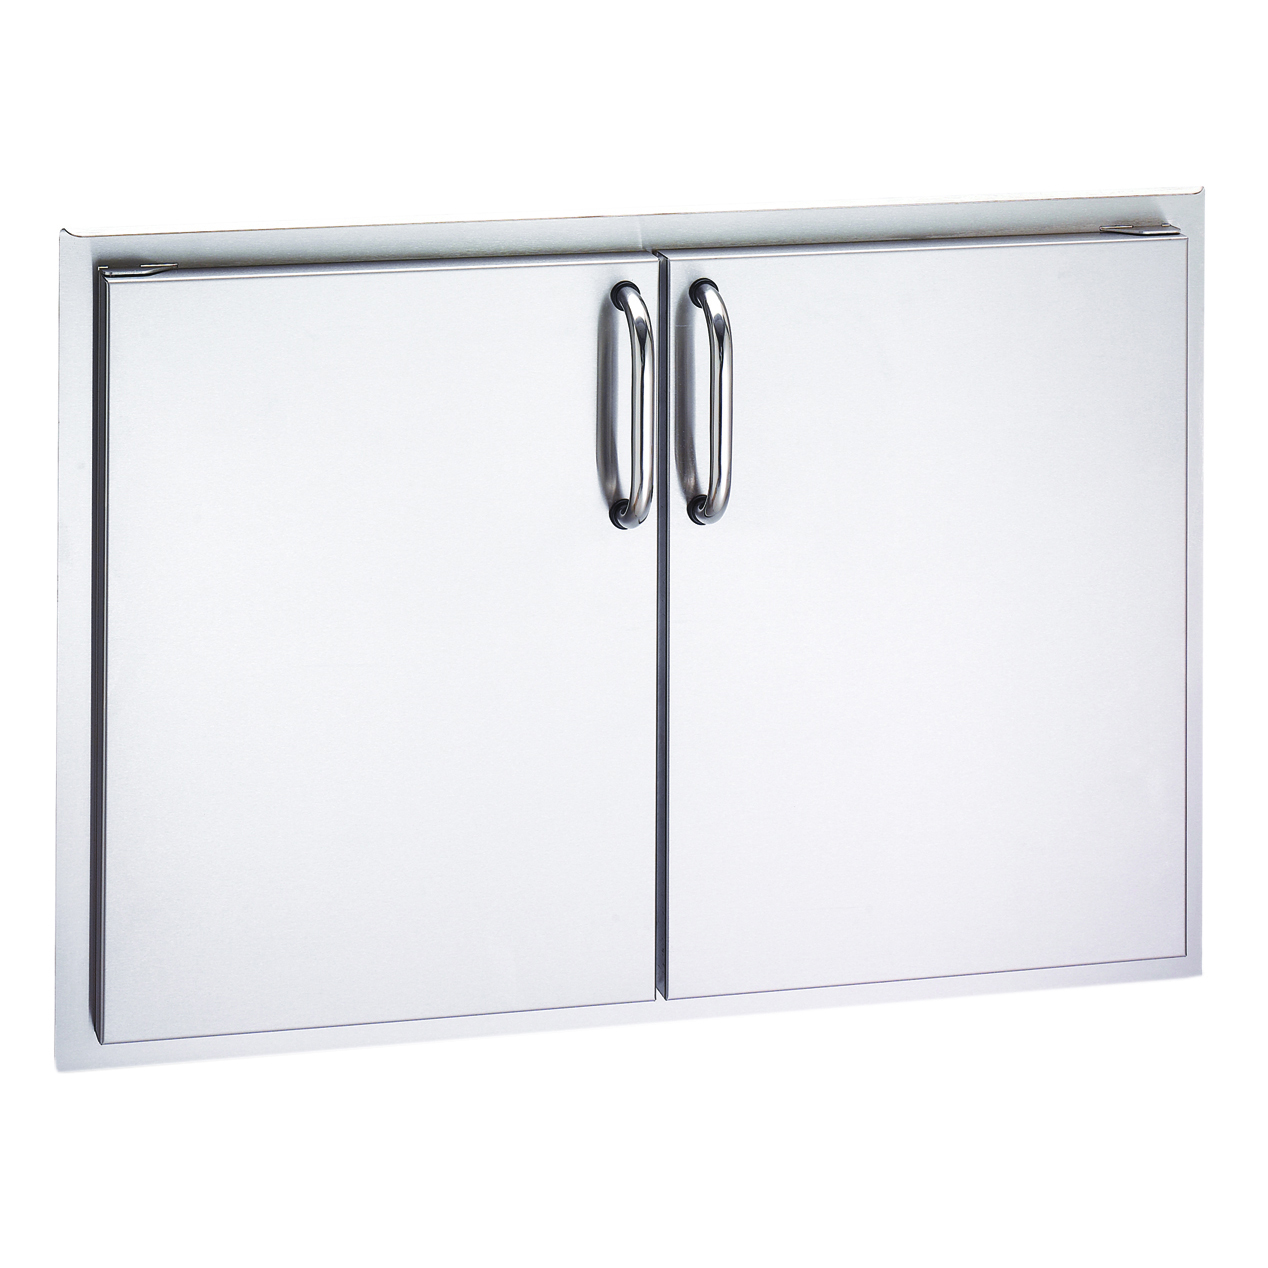 Stainless Access Doors : Fire magic aurora in stainless steel double access